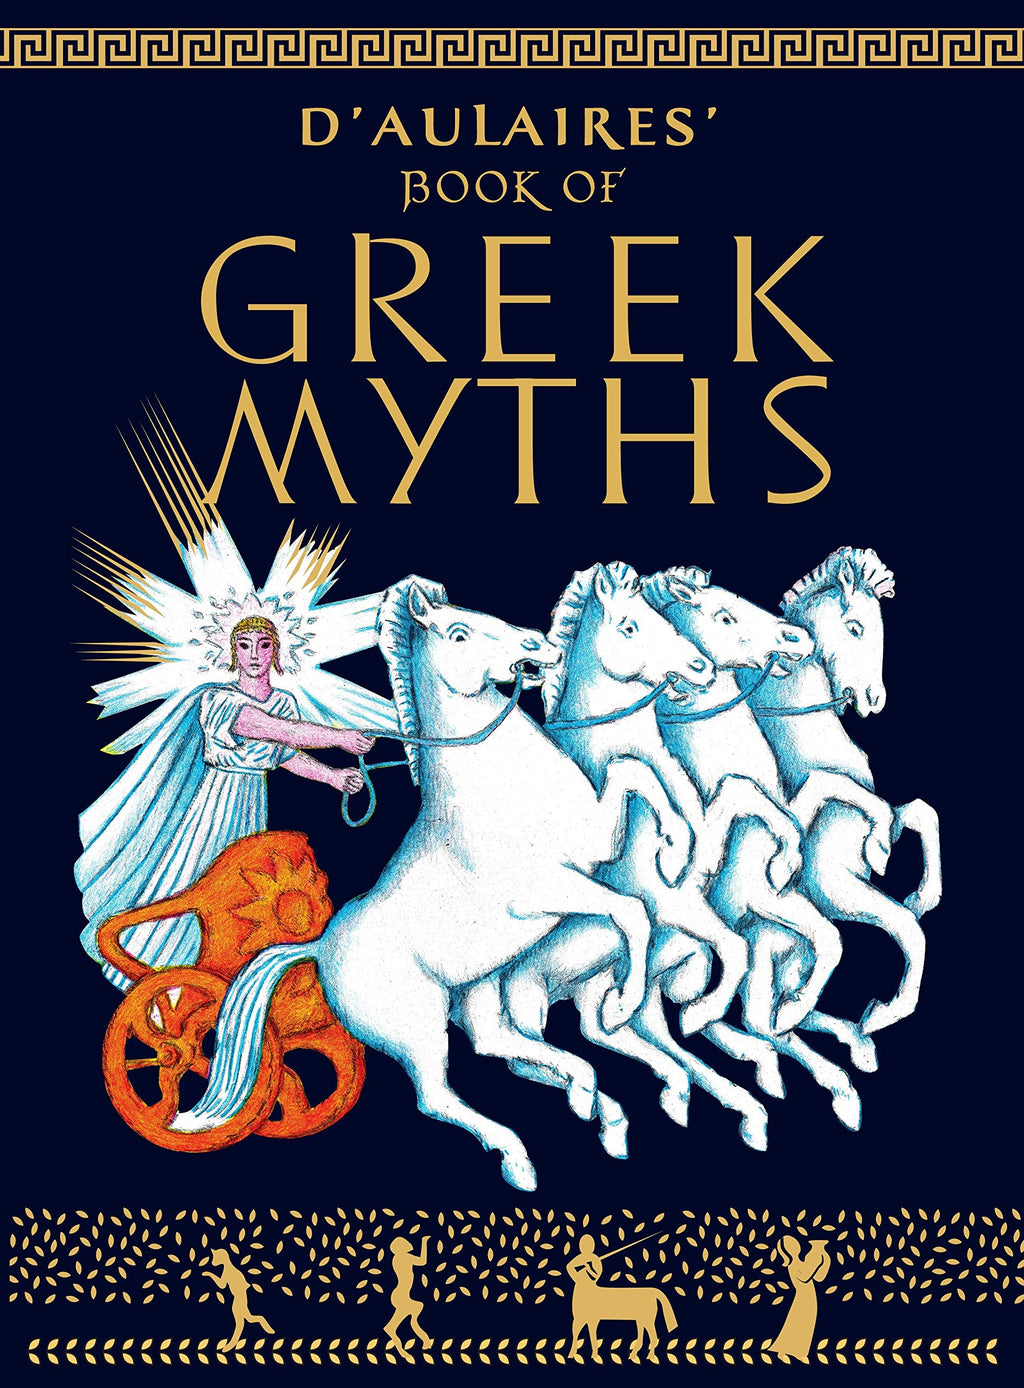 D'aulaire's Book of Greek Myths by Ingri d'Aulaire & Edgar Parin d'Aulaire